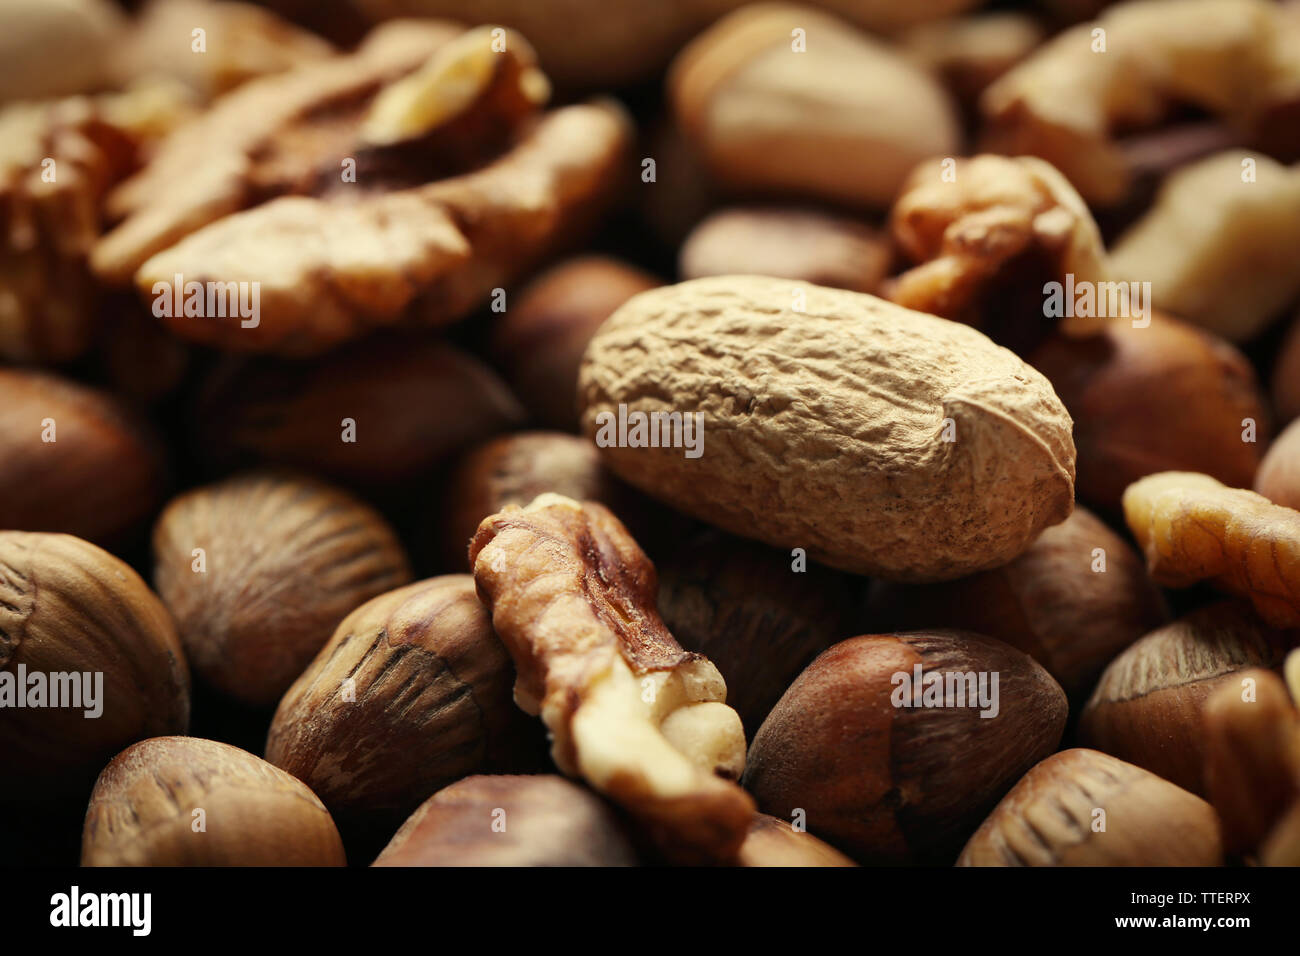 Background of hazelnuts, walnuts, almonds, acorns and peanuts Stock Photo